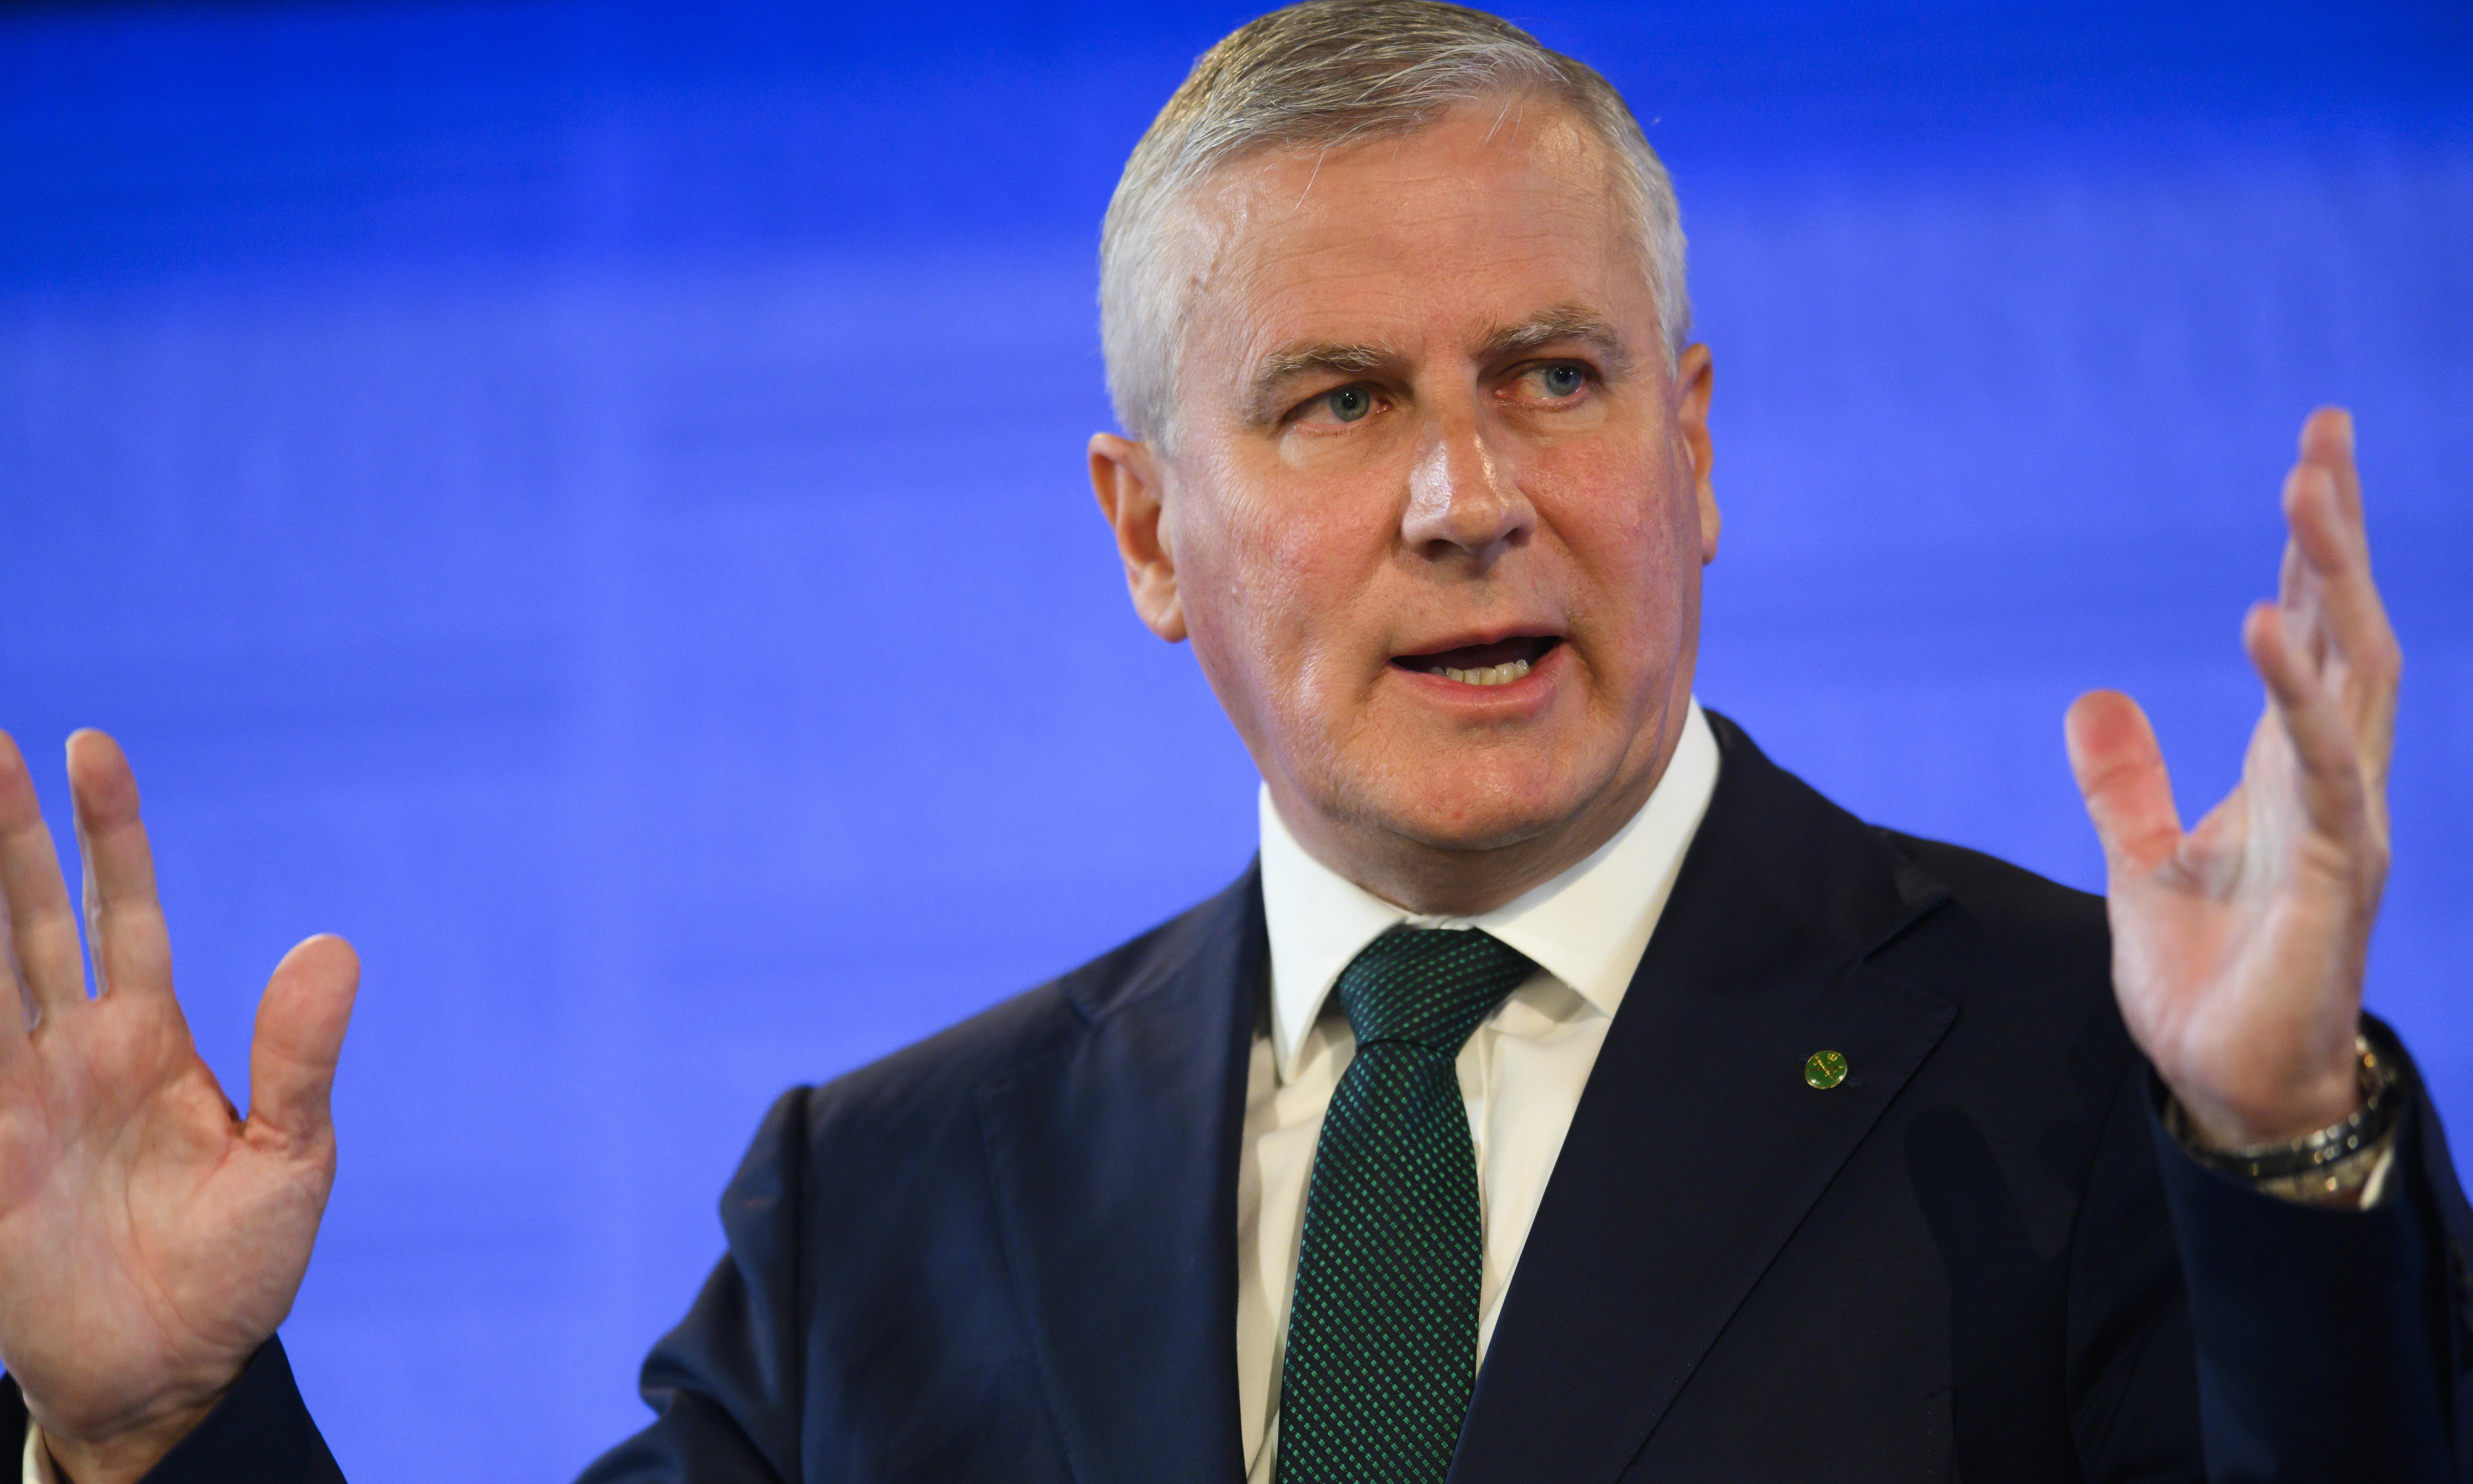 Australia's deputy PM apologises to Pacific for fruit-picking comments 'if any insult was taken'